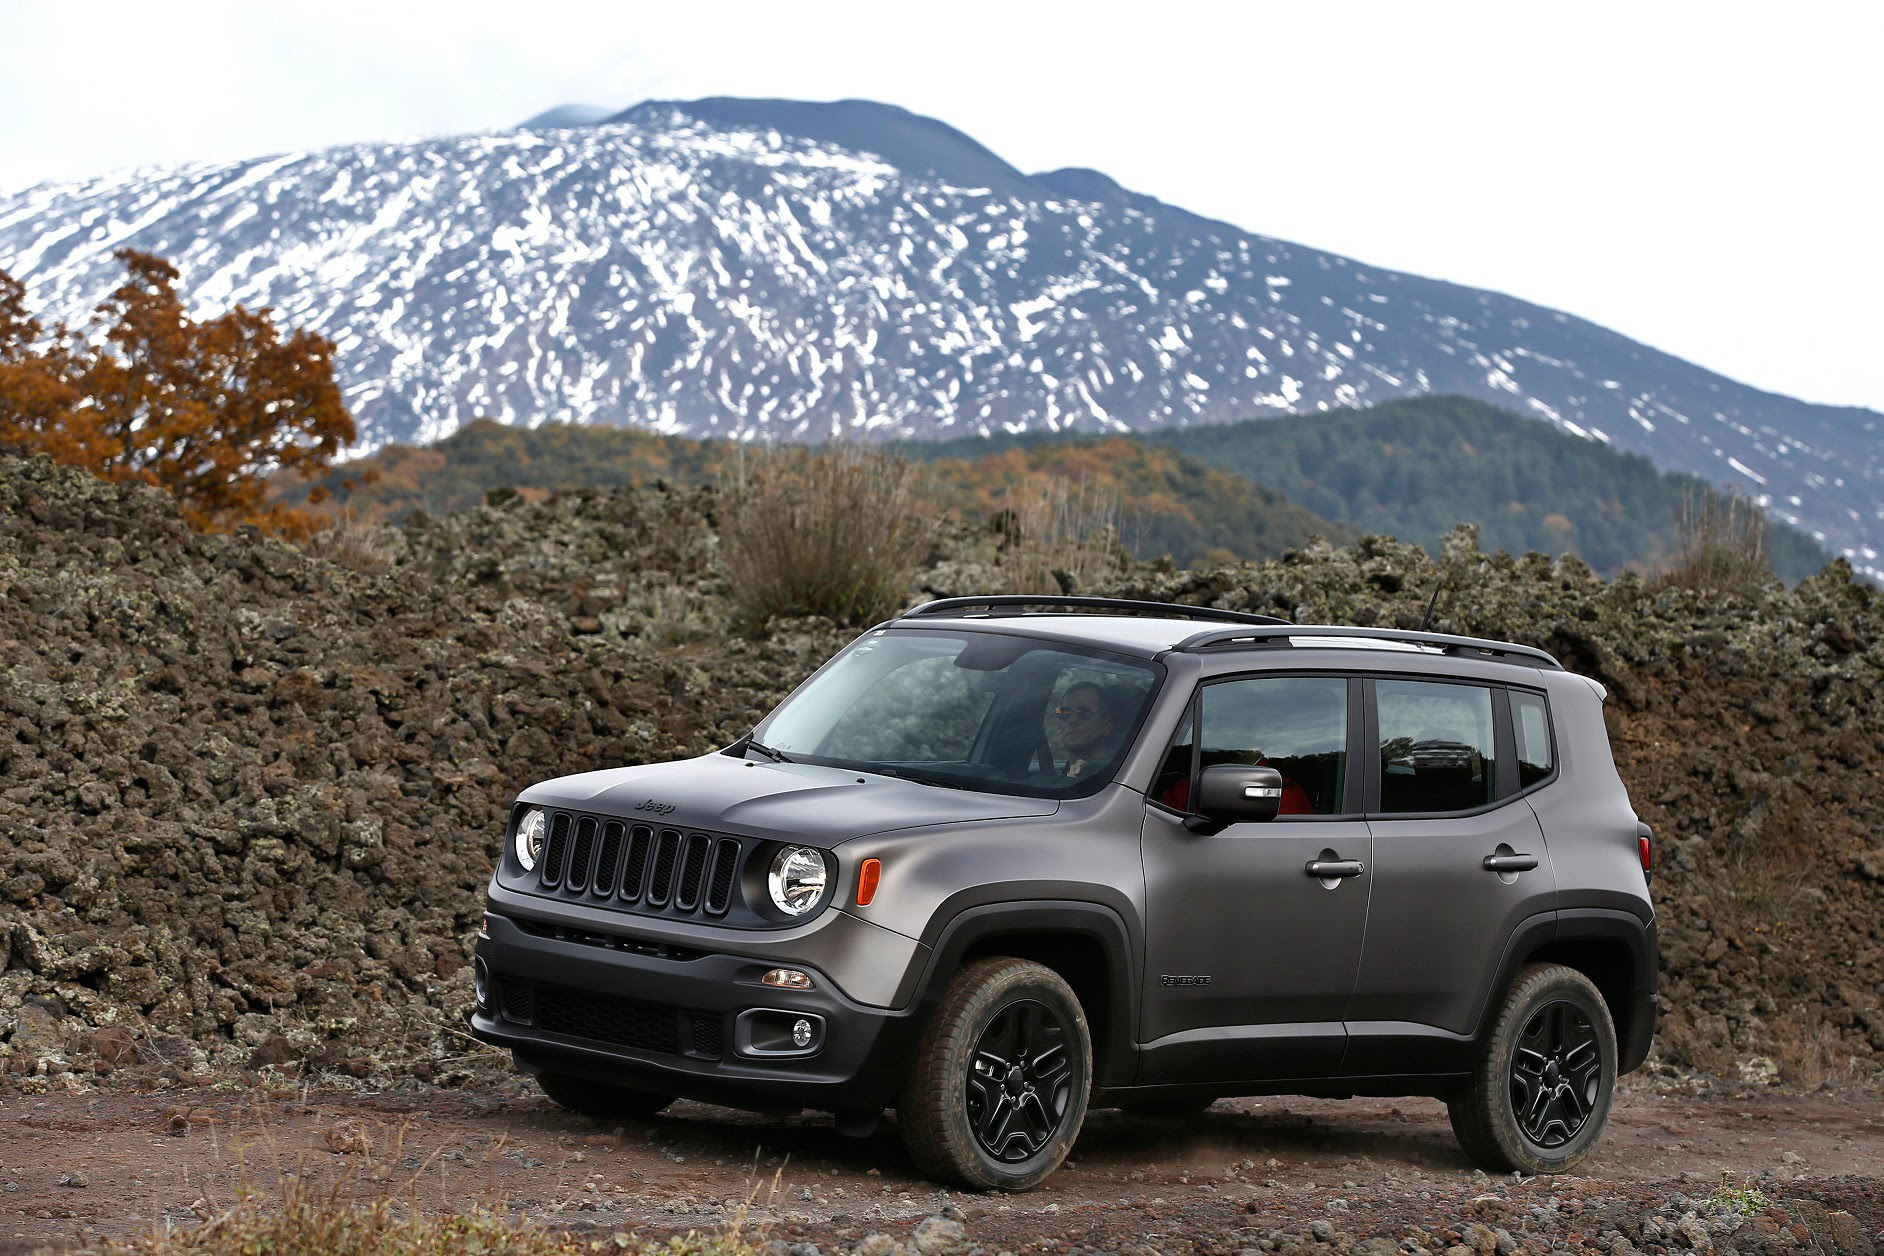 Jeep Renegade Forum > General Discussion > Special Editions > Renegade ...